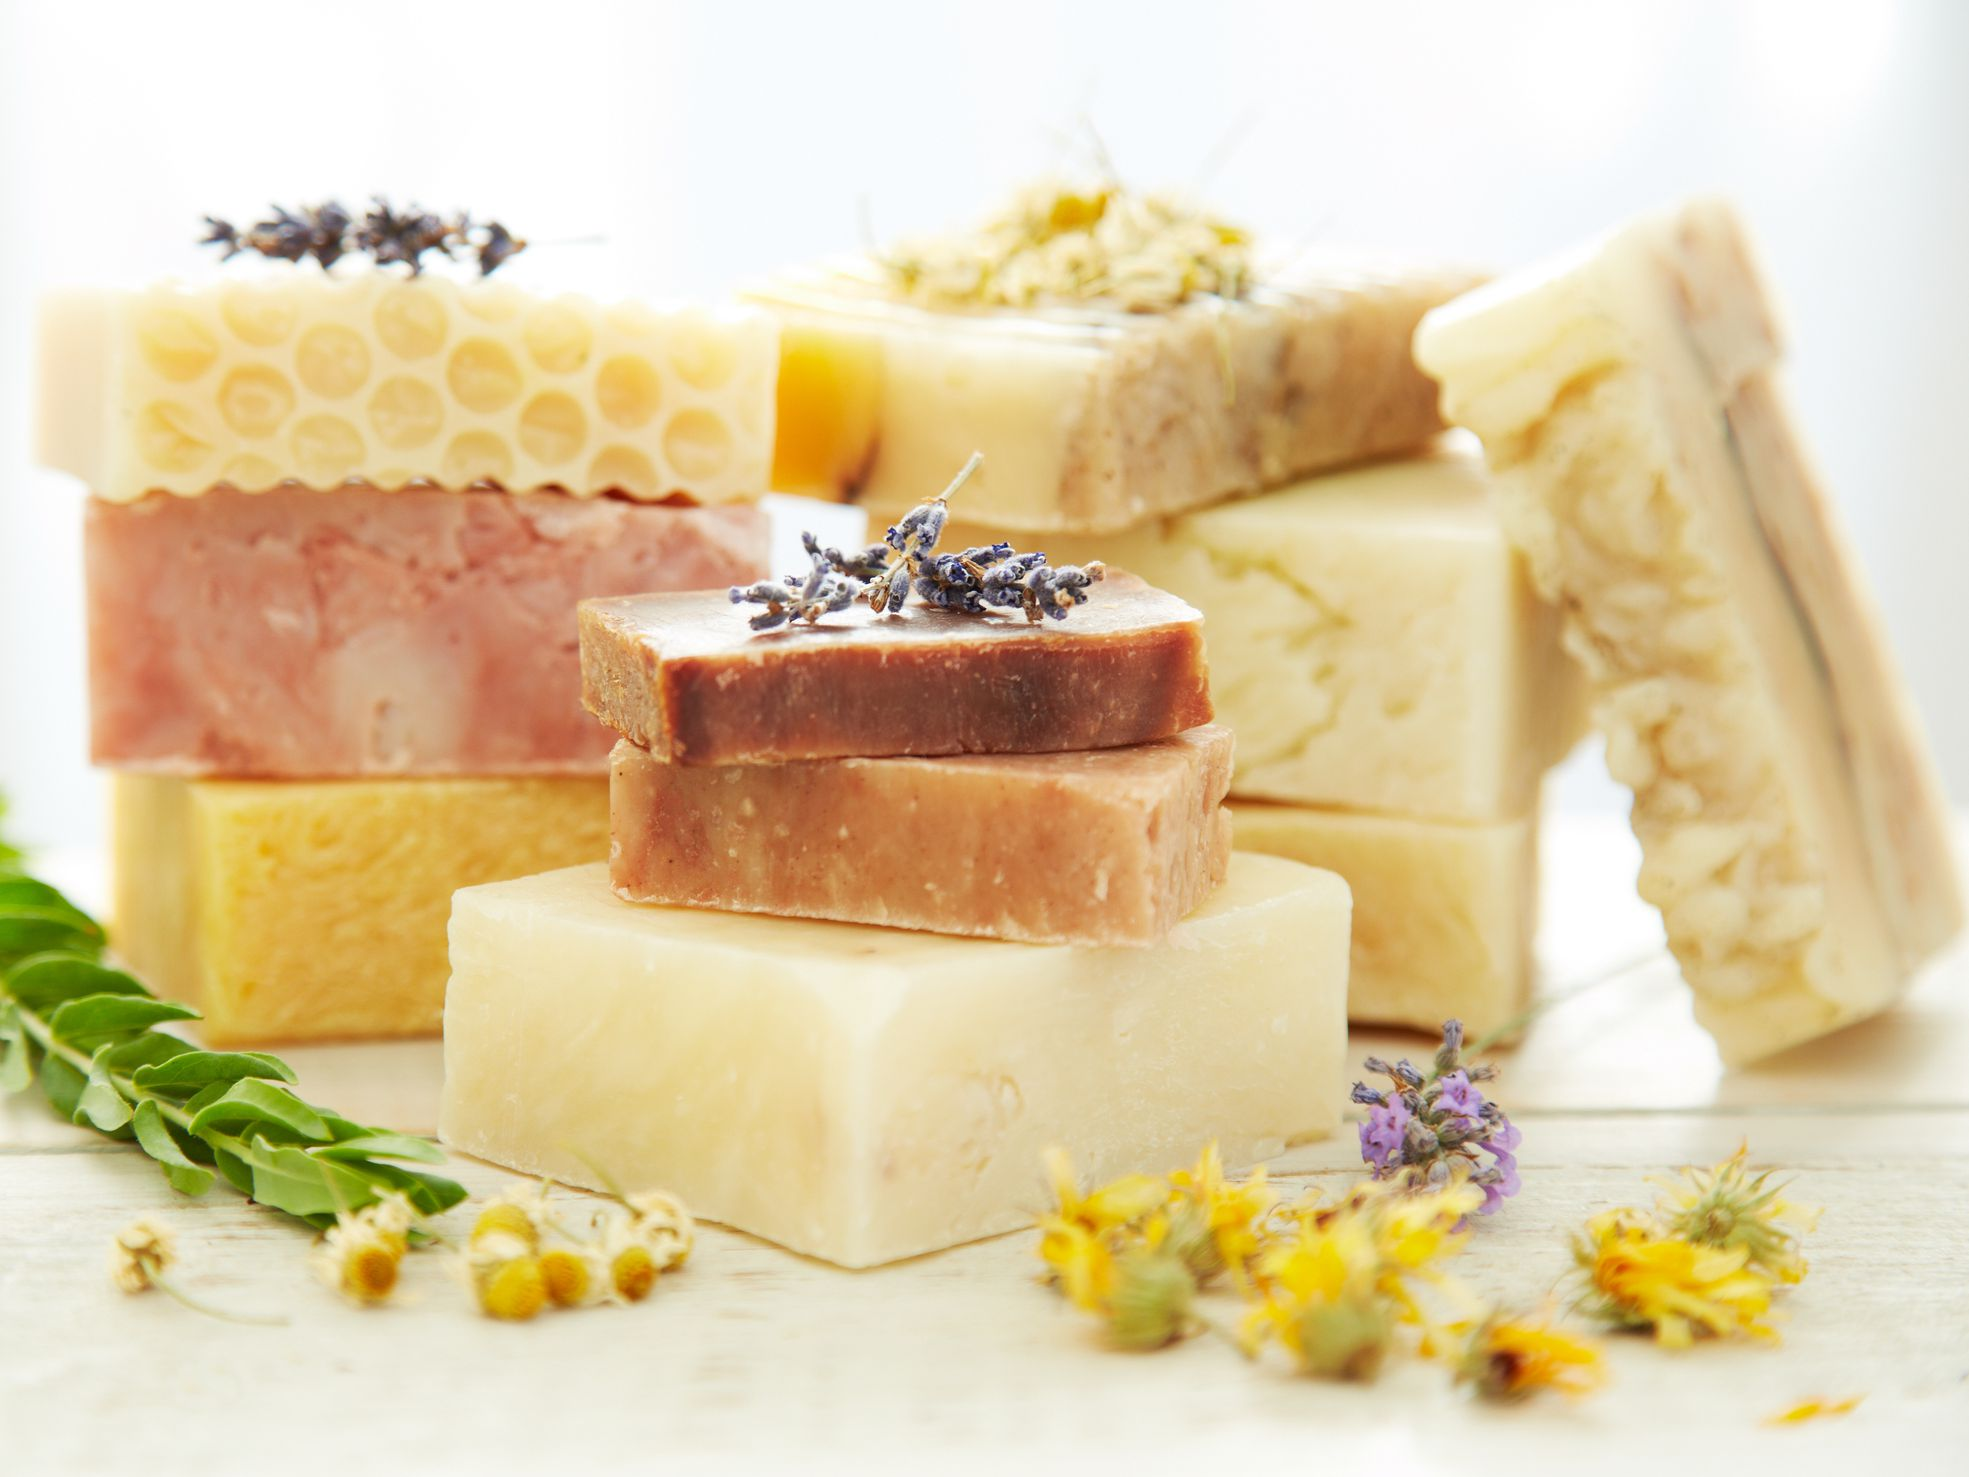 Homemadeorganicsoap-GettyImages-169946754-5909fd915f9b586470f2908e